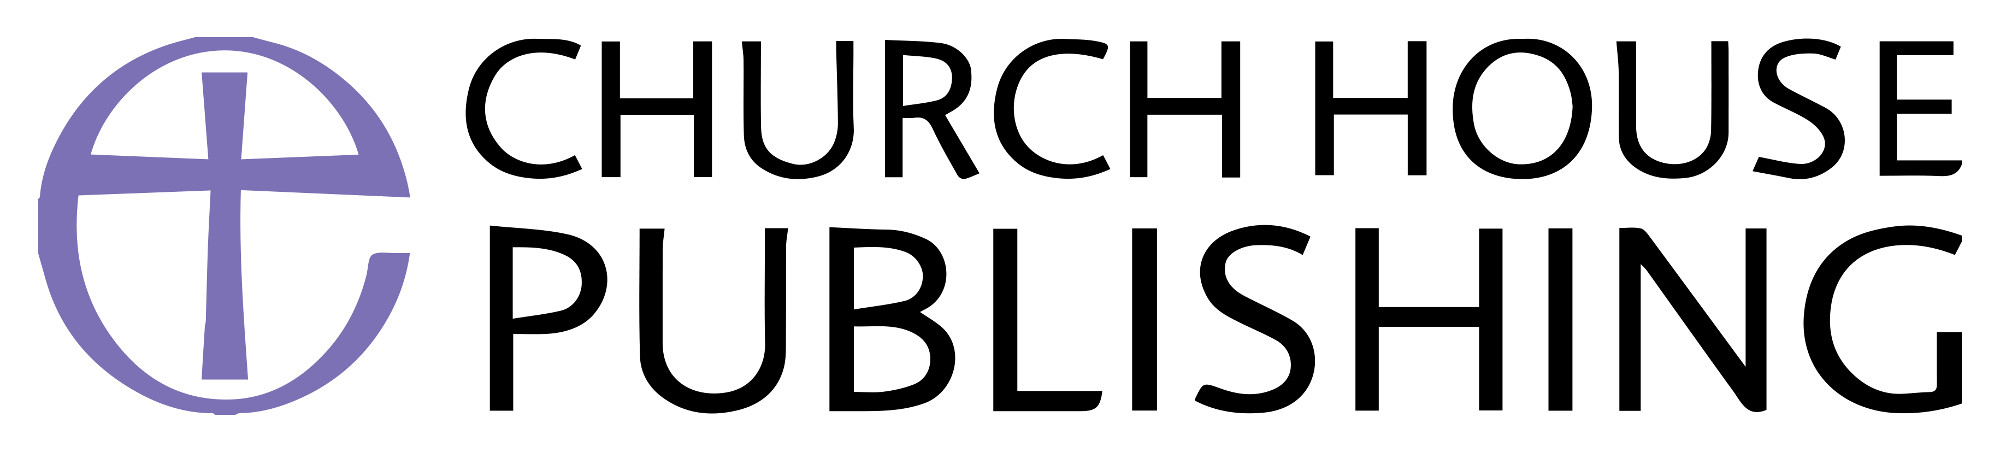 Church House Publishing logo